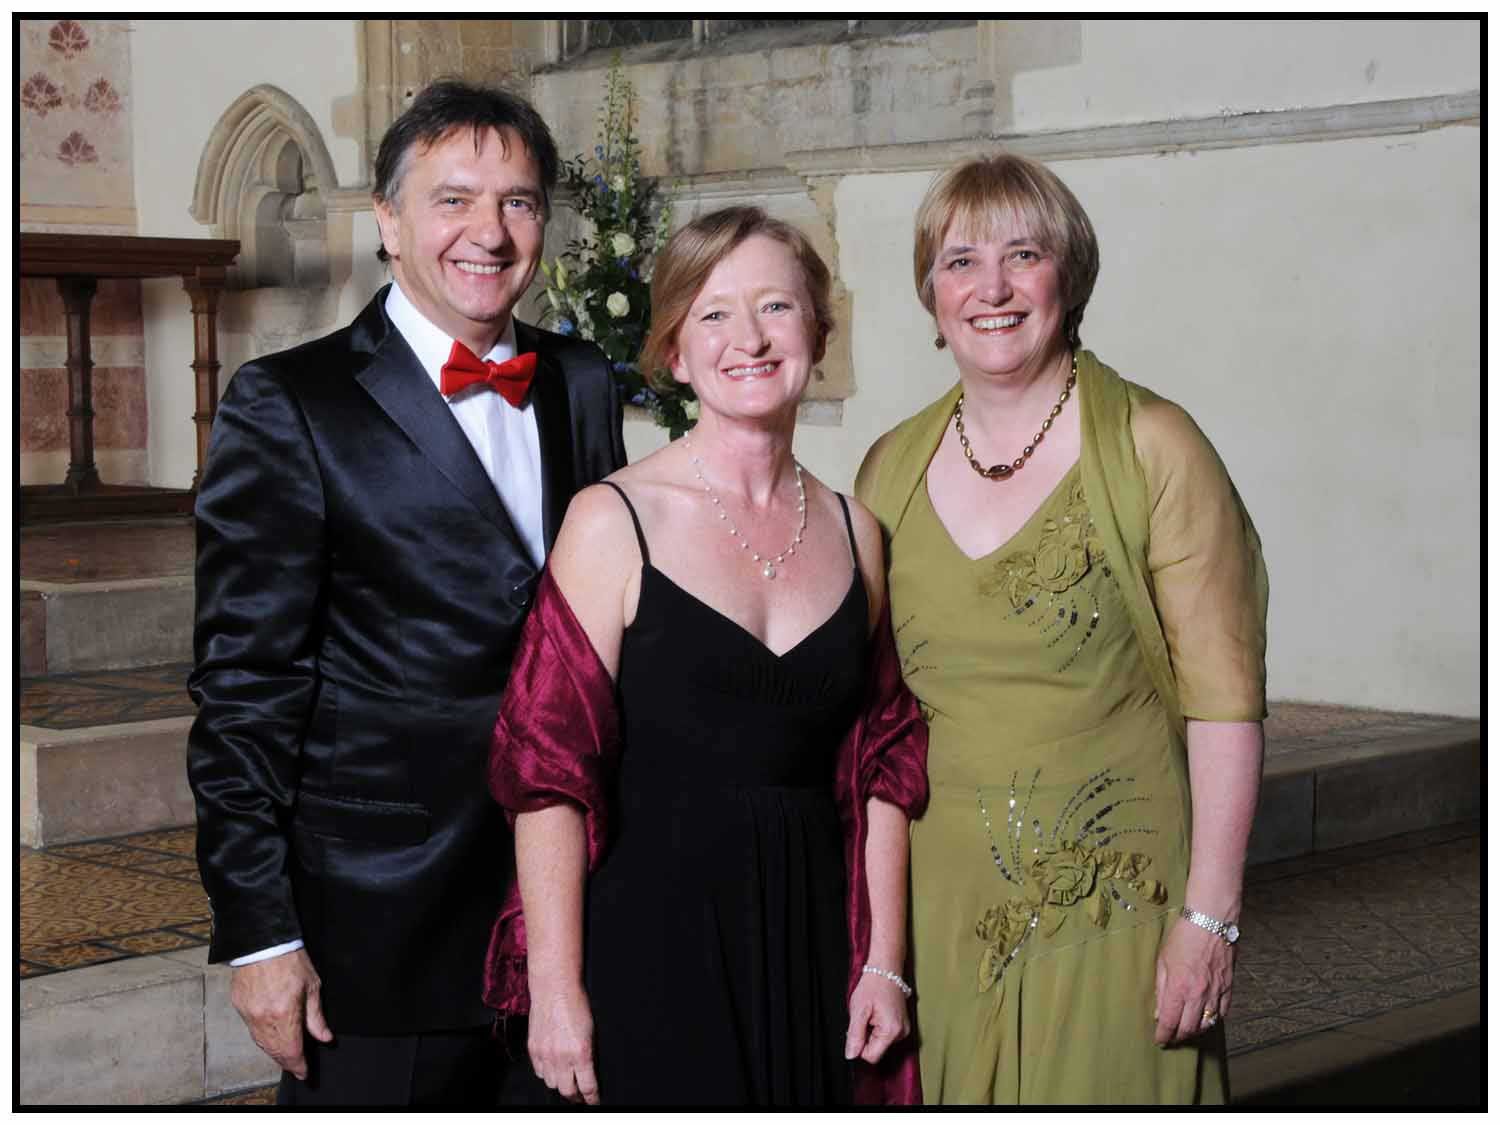 Raymond Blanc attends the 2009 ball